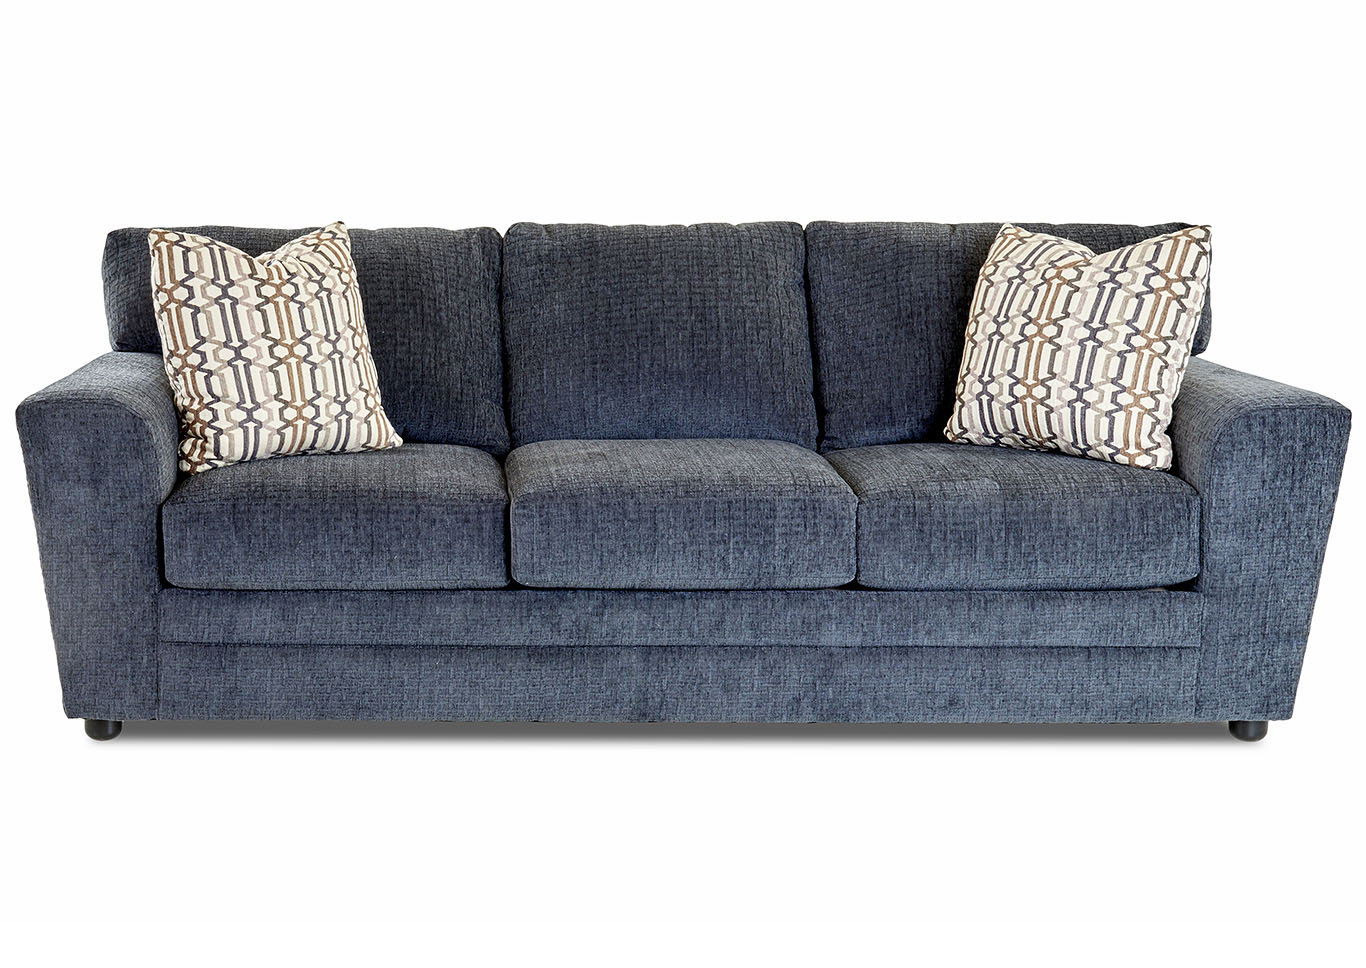 Ashburn Ultimate Pheasant Blue Stationary Fabric Sofa,Klaussner Home Furnishings